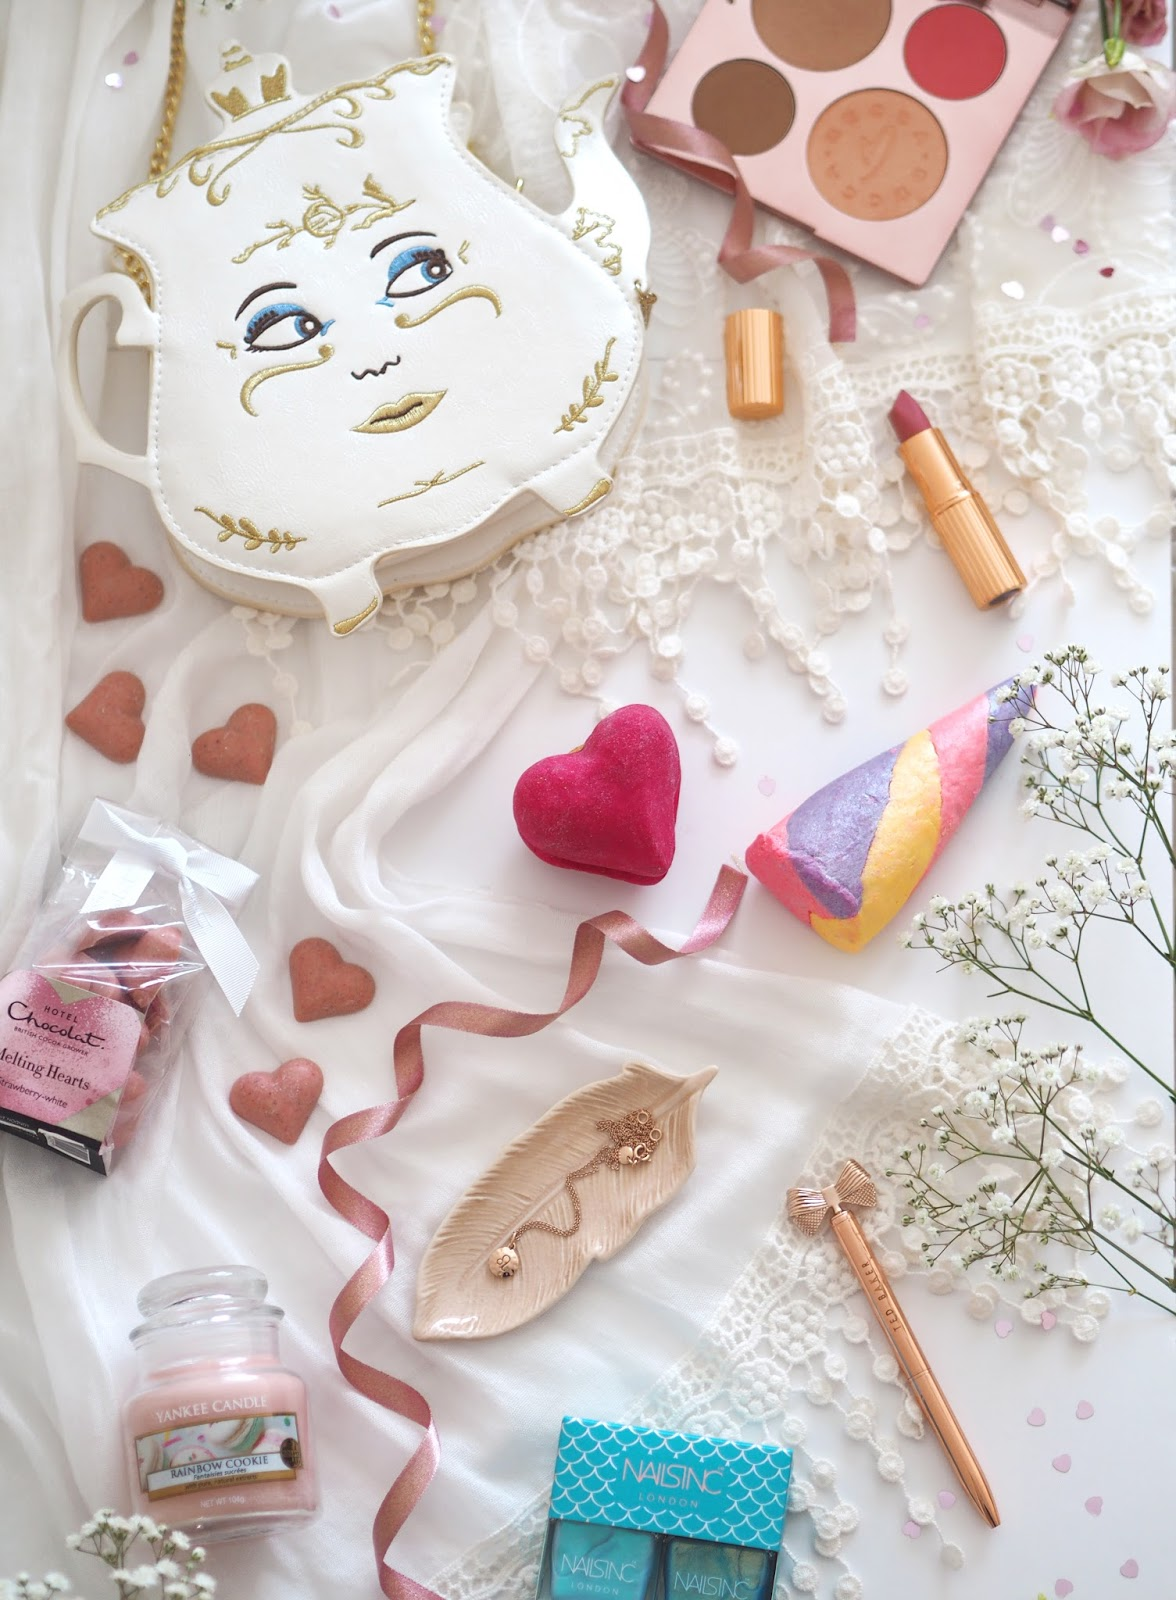 Galentine's Day Treats: Gifts For Her, Katie Kirk Loves, UK Blogger, Beauty Blogger, Girls Day, Galentines Day, Female Empowerment, Girlfriends, Female Friendships, Women Empowerment, Year of the Woman, Girlie Treats, Girlie Gifts, Valentines Gift for Her, Valentines Day Gift Guide, Beauty Gifts, Rose Gold Gifts